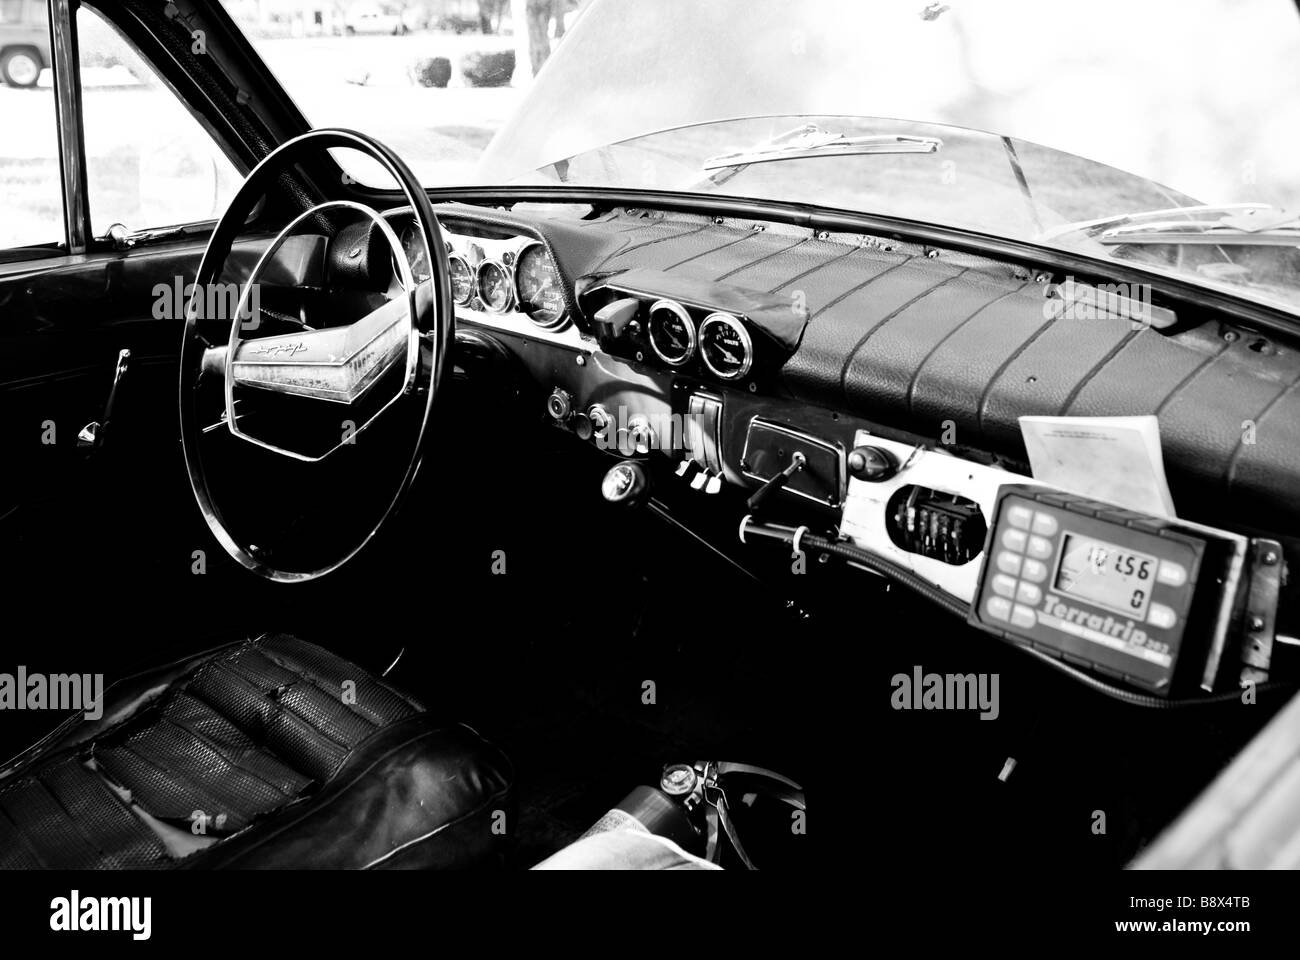 classic volvo stock photos classic volvo stock images alamy. Black Bedroom Furniture Sets. Home Design Ideas